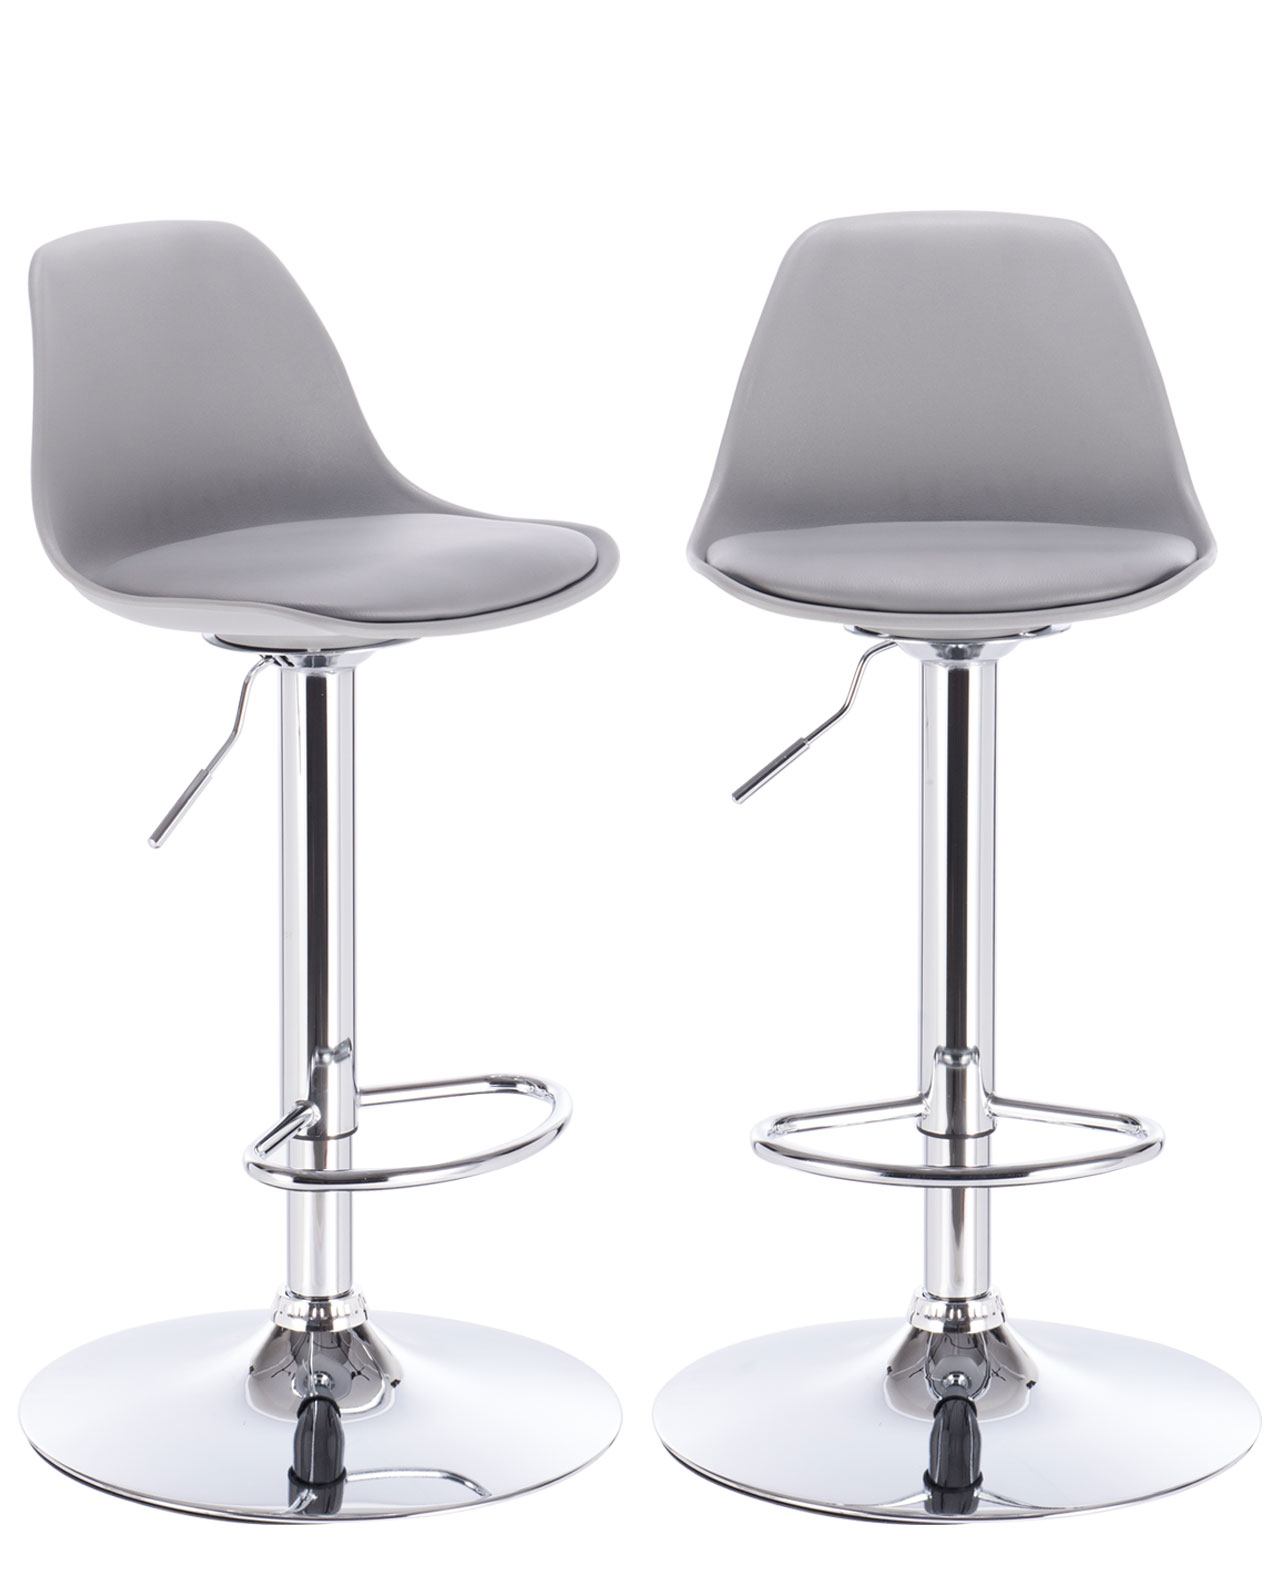 lot de 2 tabourets bar design sig gris clair cuisine kayelles - Tabouret Bar Design